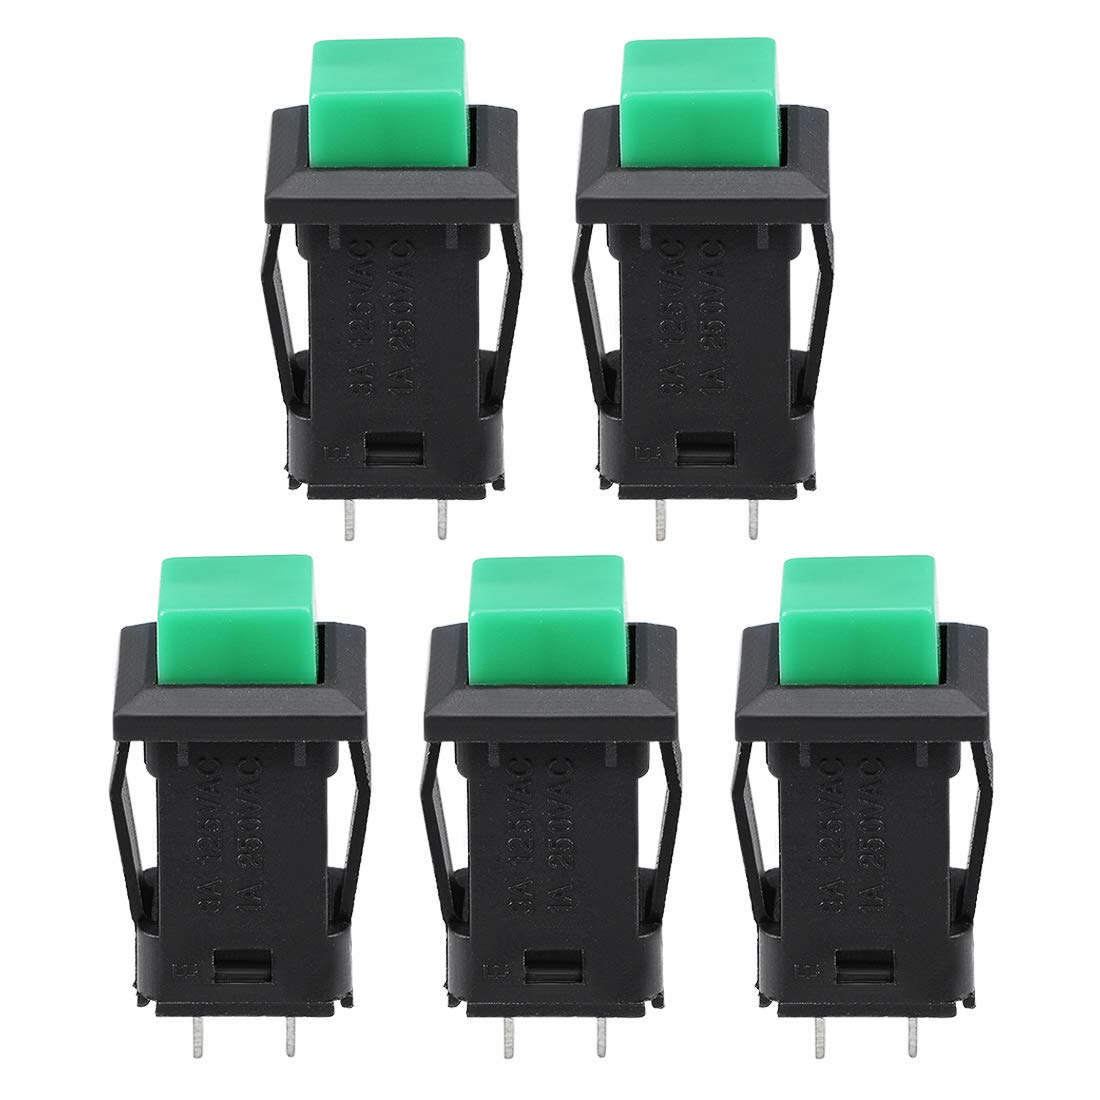 uxcell Latching Plastic Push Button Switch 2 Screw Terminals Round Head Green 5pcs a18062200ux0413